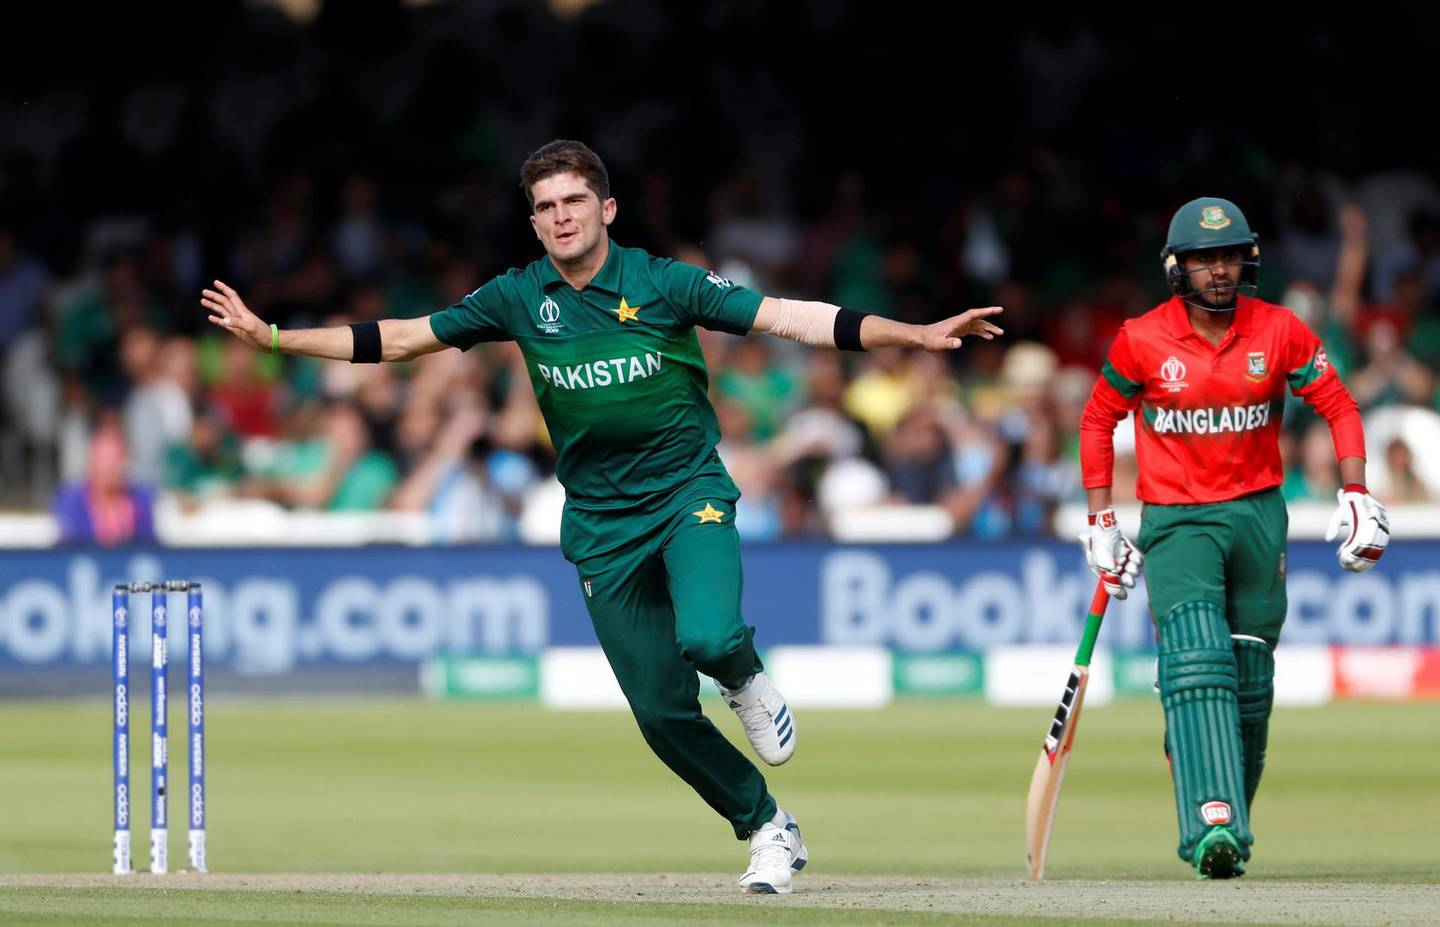 Cricket - ICC Cricket World Cup - Pakistan v Bangladesh - Lord's, London, Britain - July 5, 2019   Pakistan's Shaheen Afridi celebrates taking the wicket of Bangladesh's Mahmudullah   Action Images via Reuters/Paul Childs